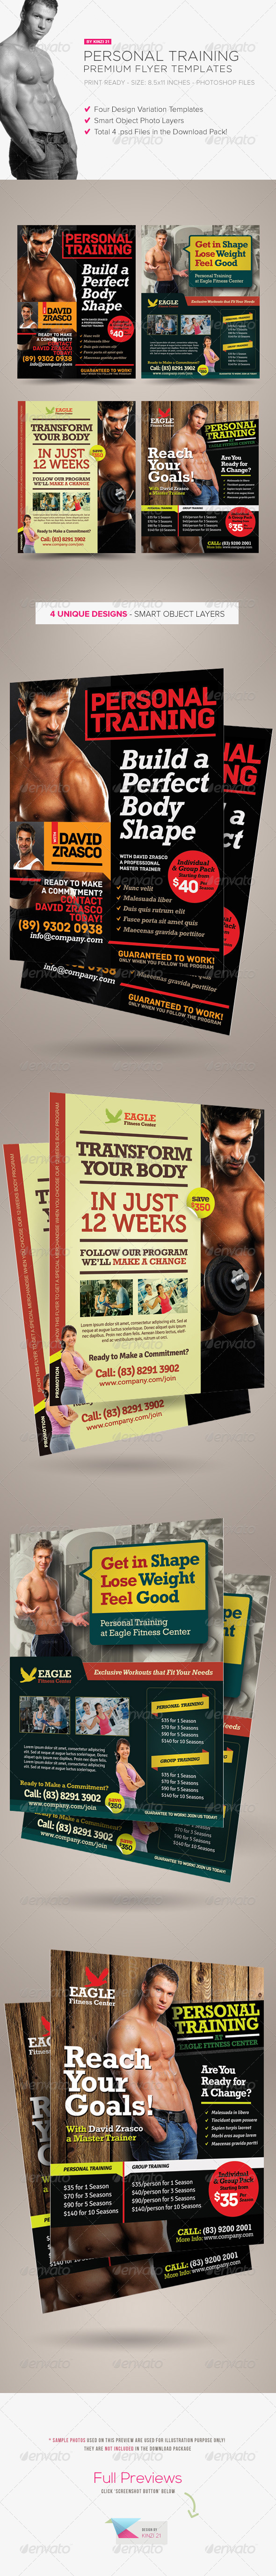 GraphicRiver Personal Training Flyers 5143213